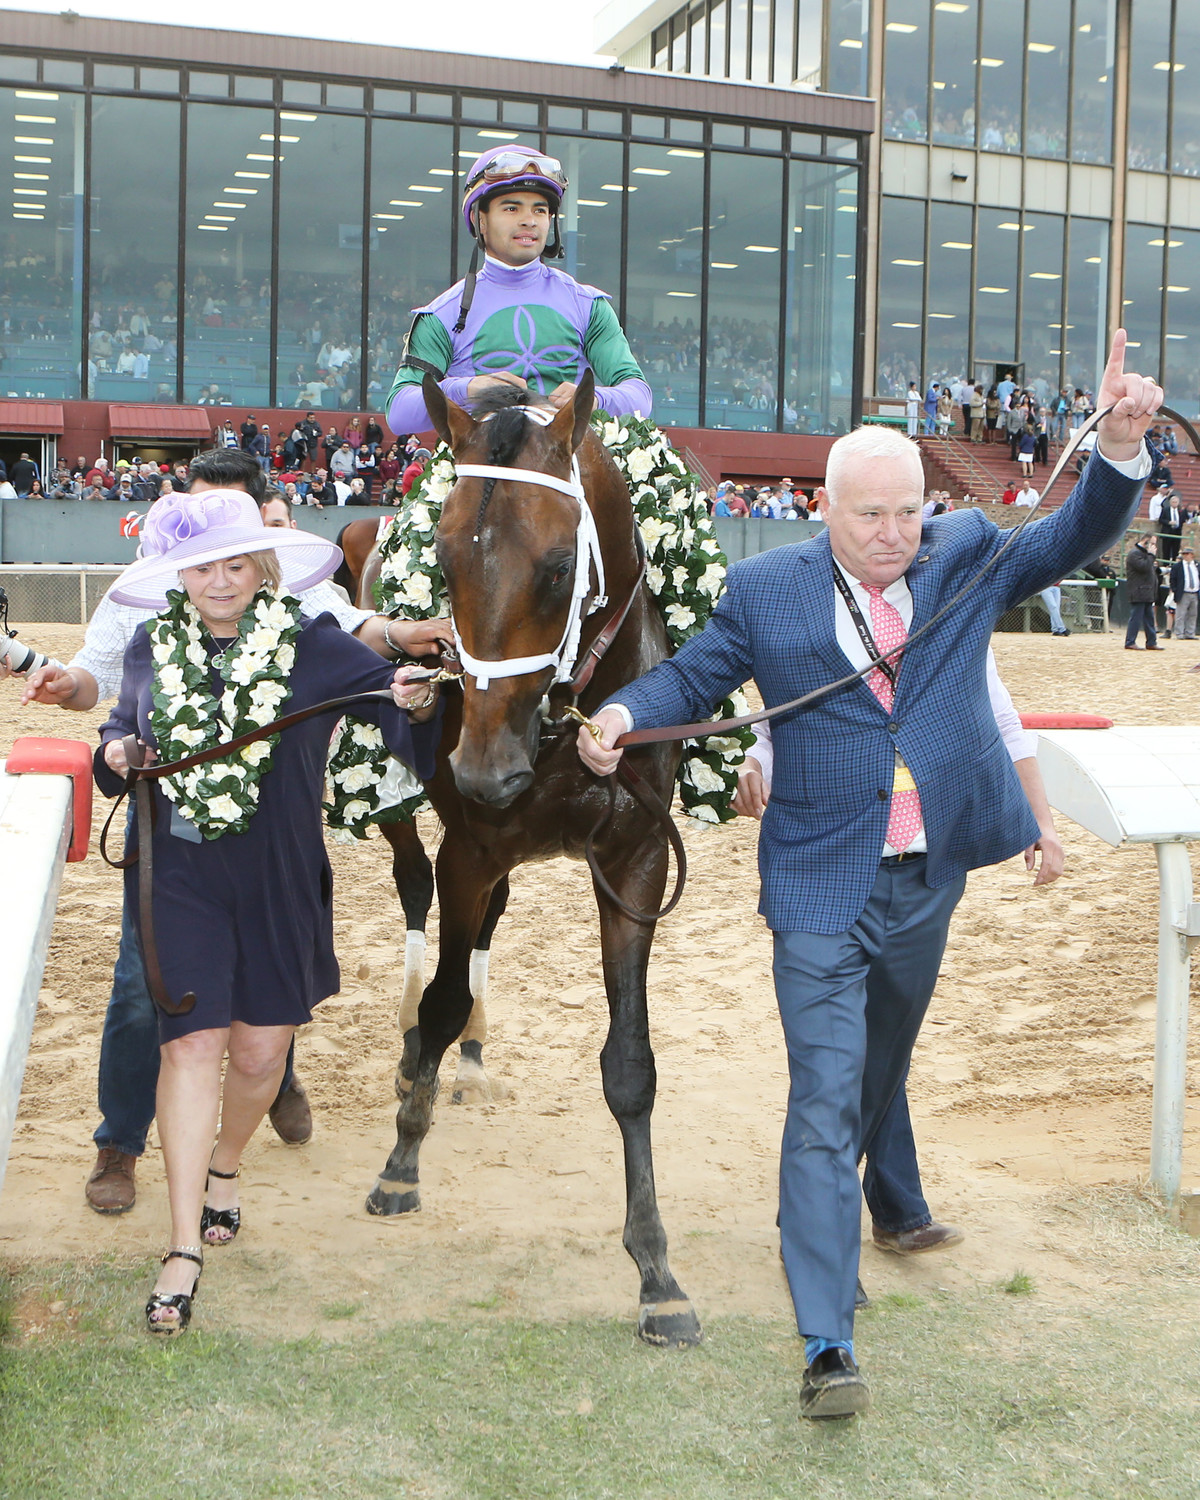 TO THE RACES